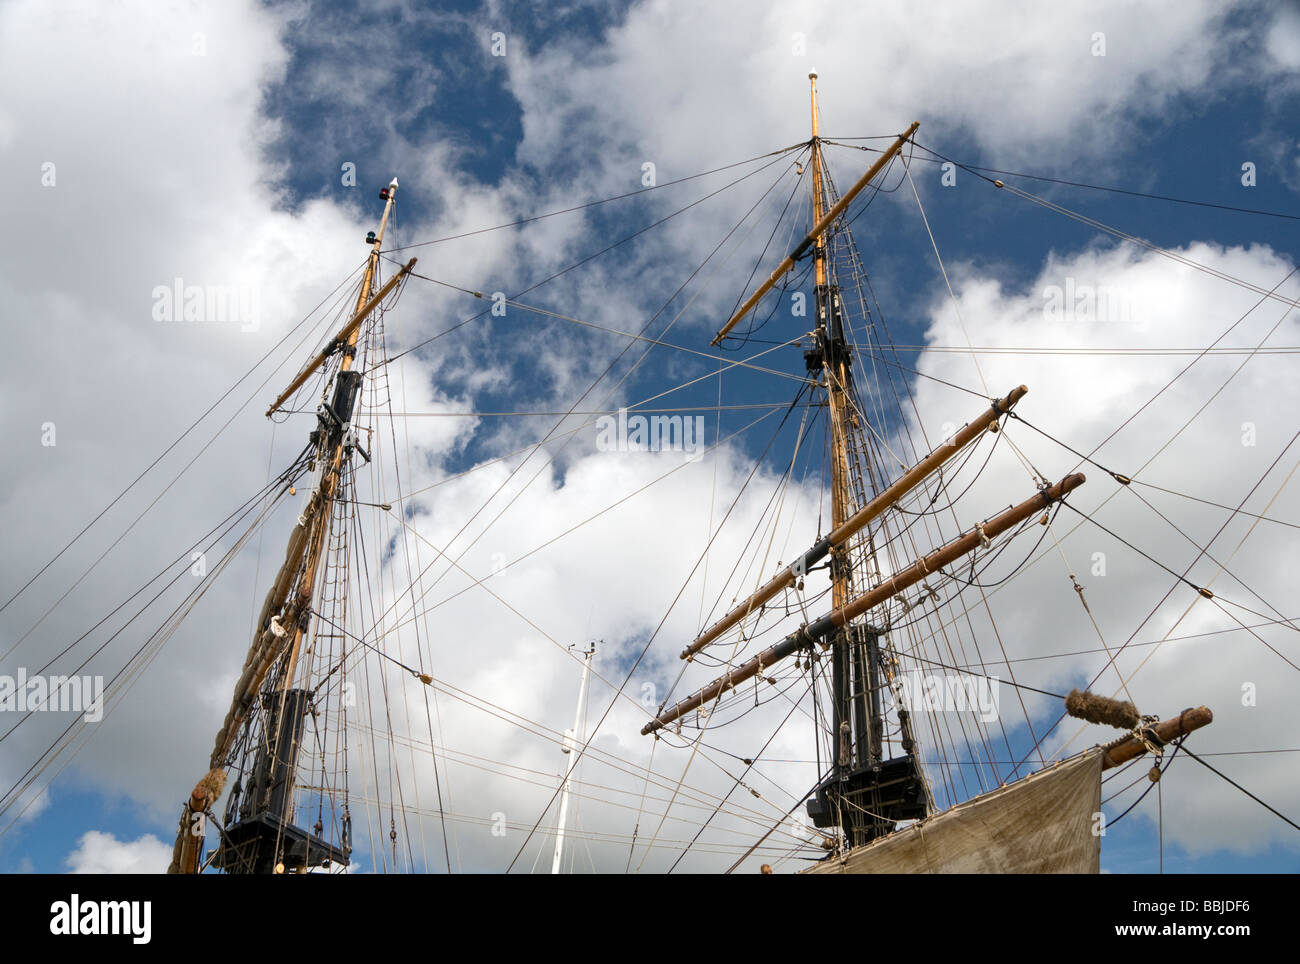 One of the tall ships anchored at Charlestown in Cornwall, England, UK Stock Photo